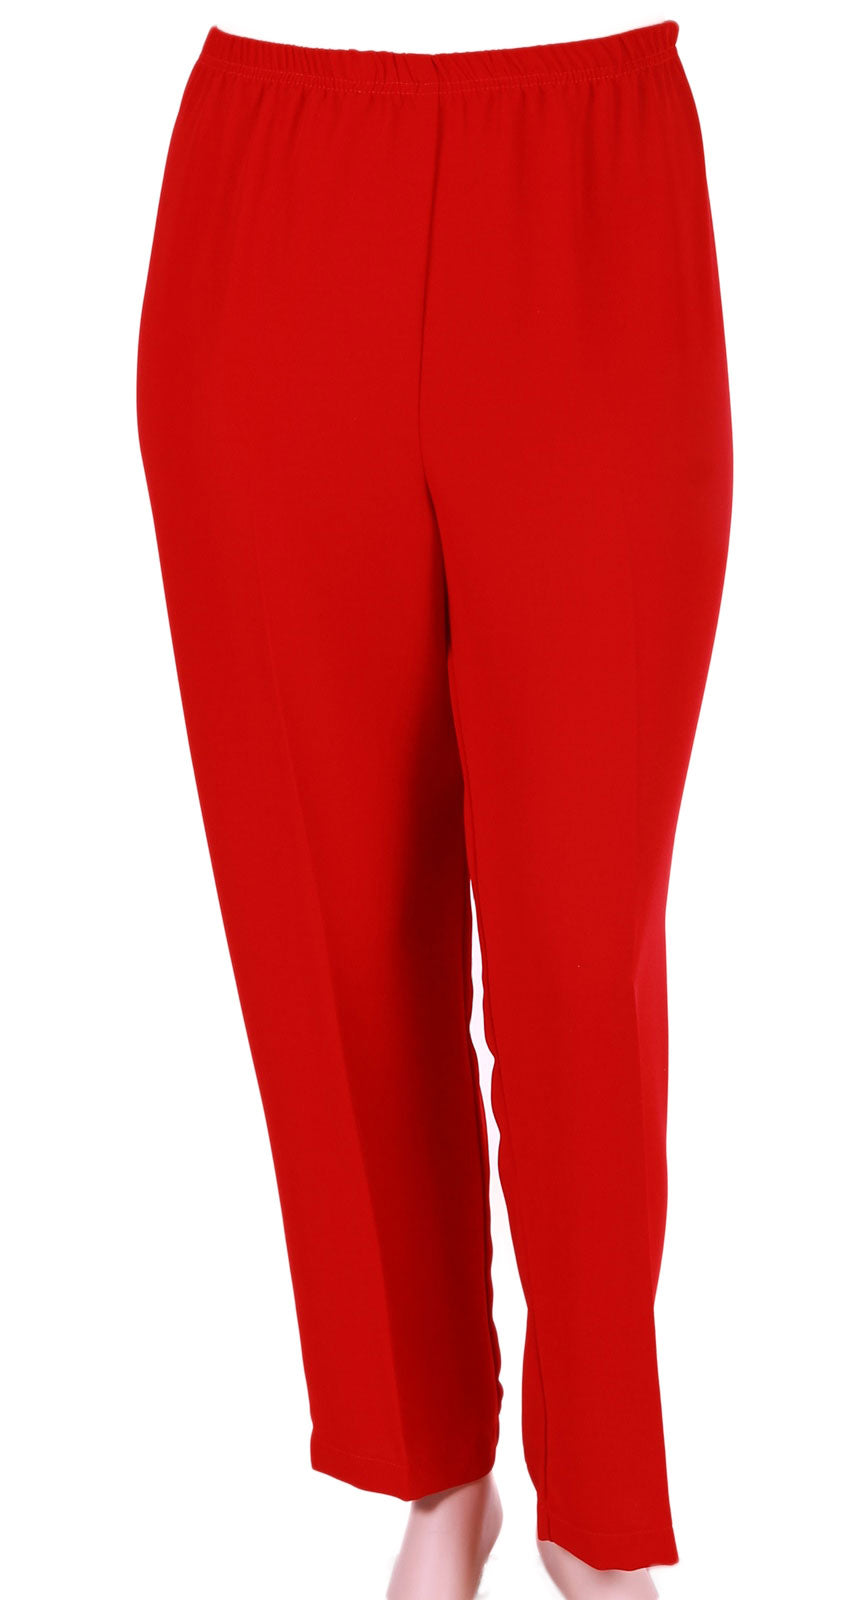 Sybil's Crepe Pant Red